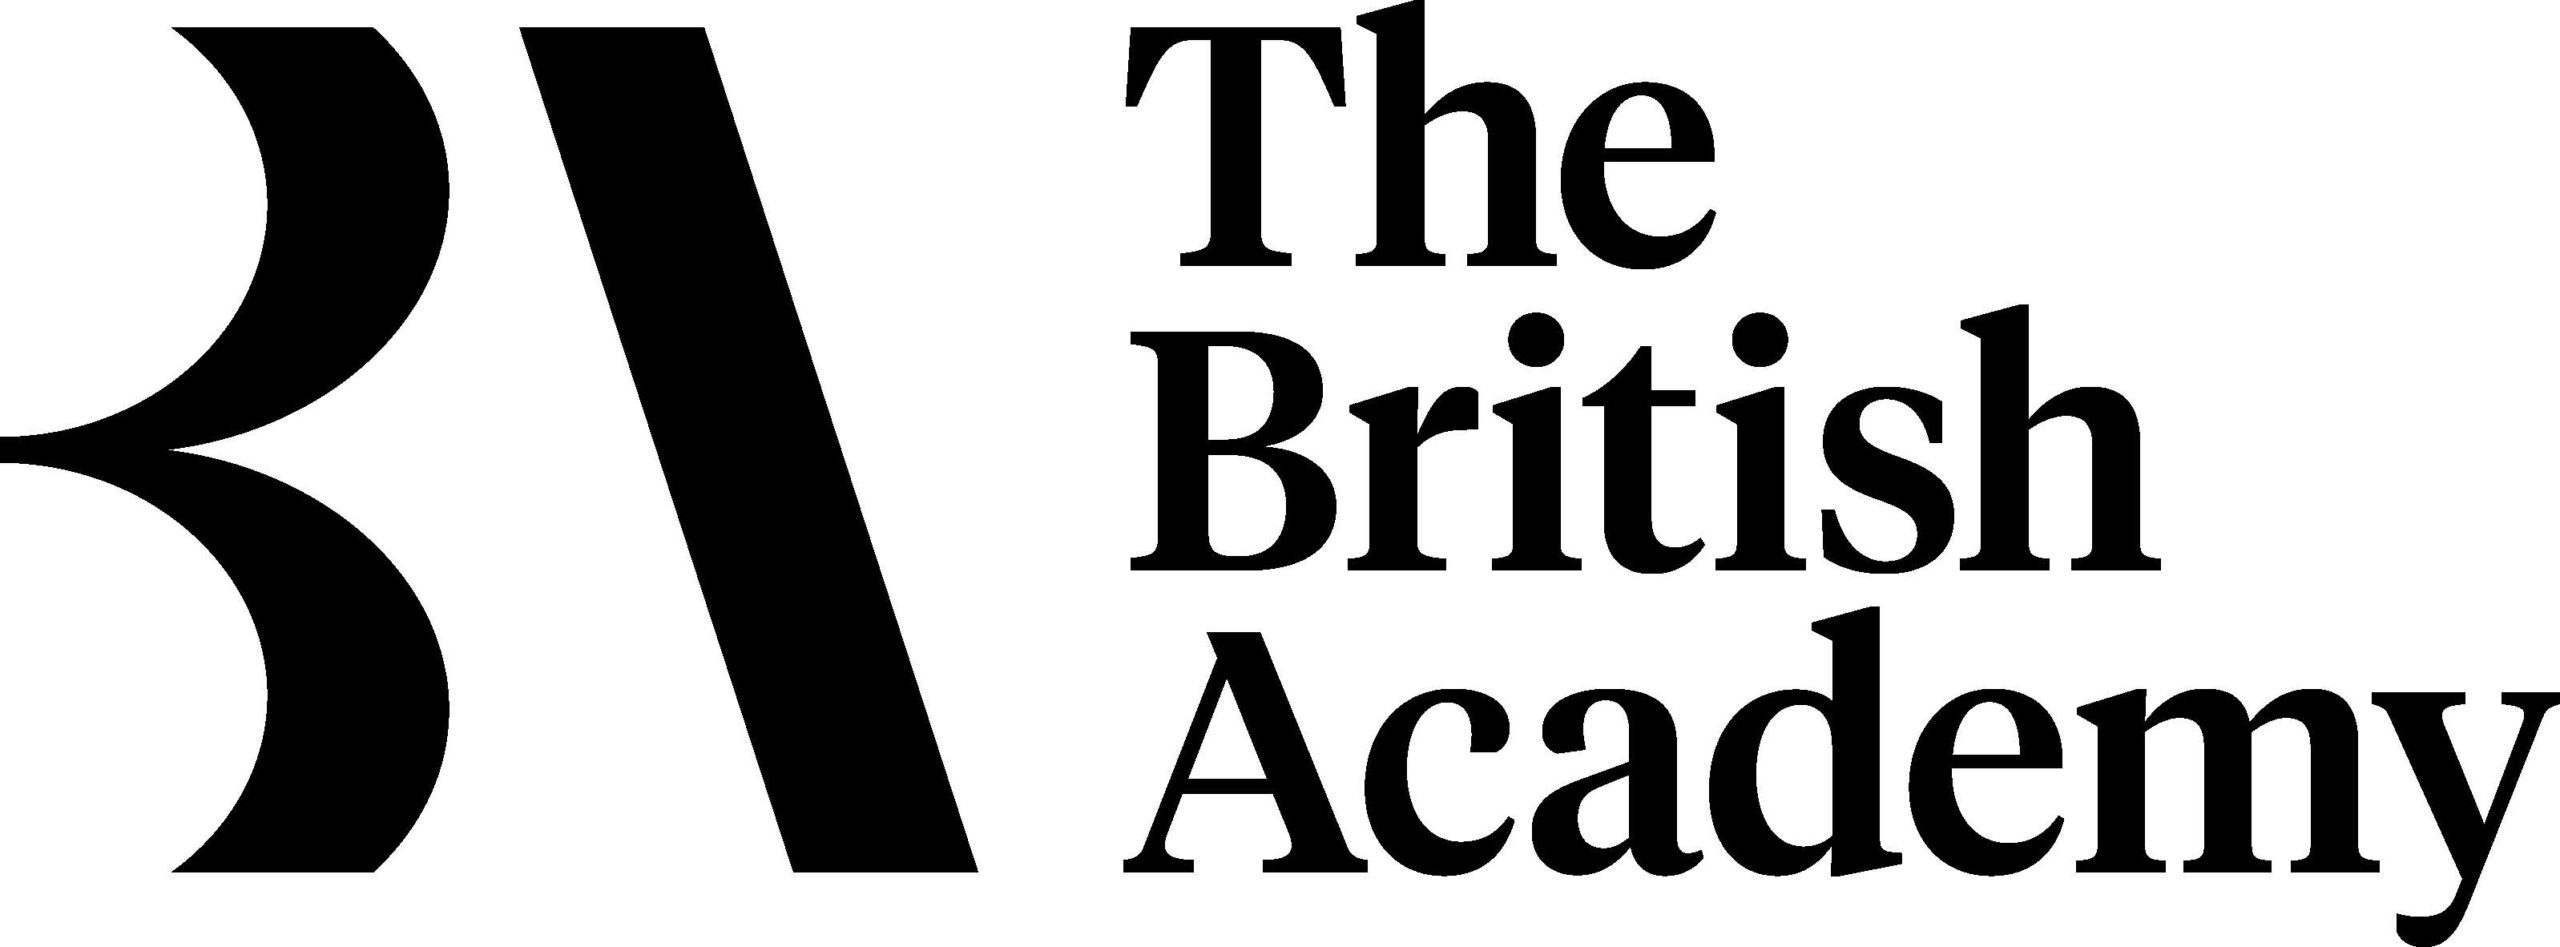 Scholarship Online Advance your career with a British MBA Artificial Intelligence in 1 Year, 100% Online!: (Deadline 25 August 2020)